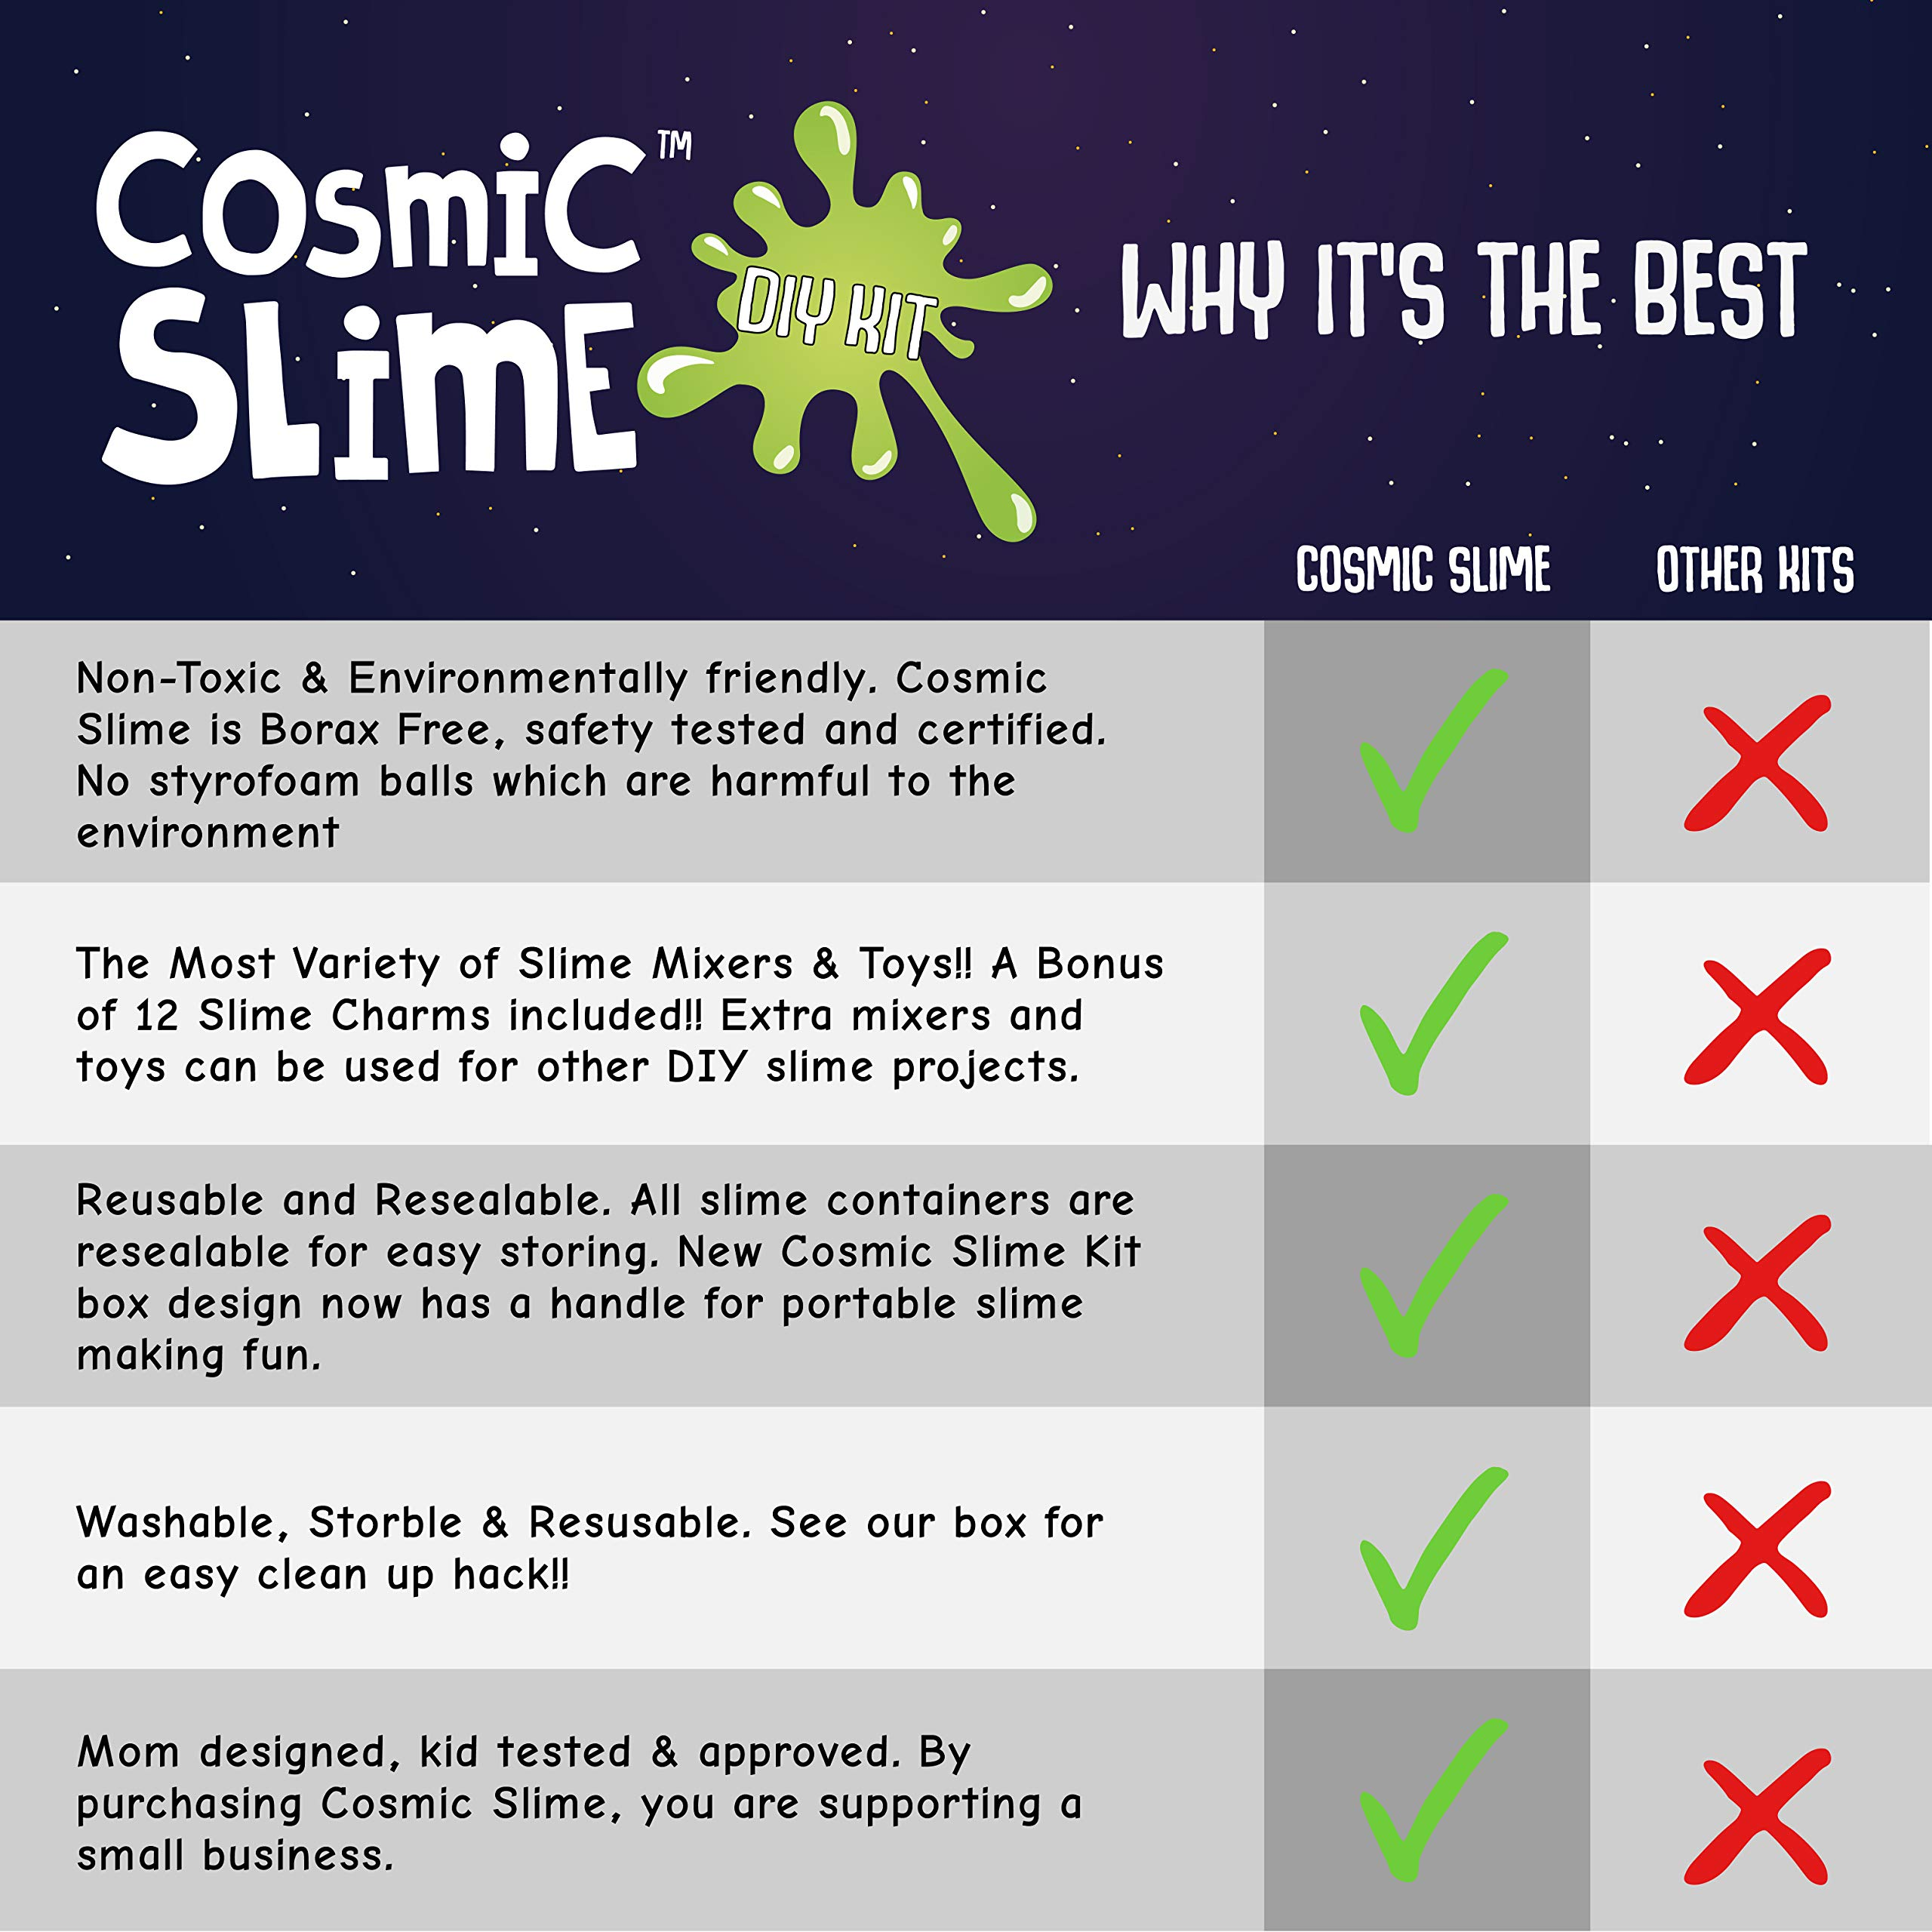 Cosmic Slime Kit - Jumbo 55 Piece Set, Slime Supplies, Make Your Own Slime Kit, Slime Charms, Non-Toxic Clear Putty, Slime Kit for Girls and Boys, Sensory Toy and Slime, Great Gift for Girls and Boys by Stardust & Jupiter (Image #4)